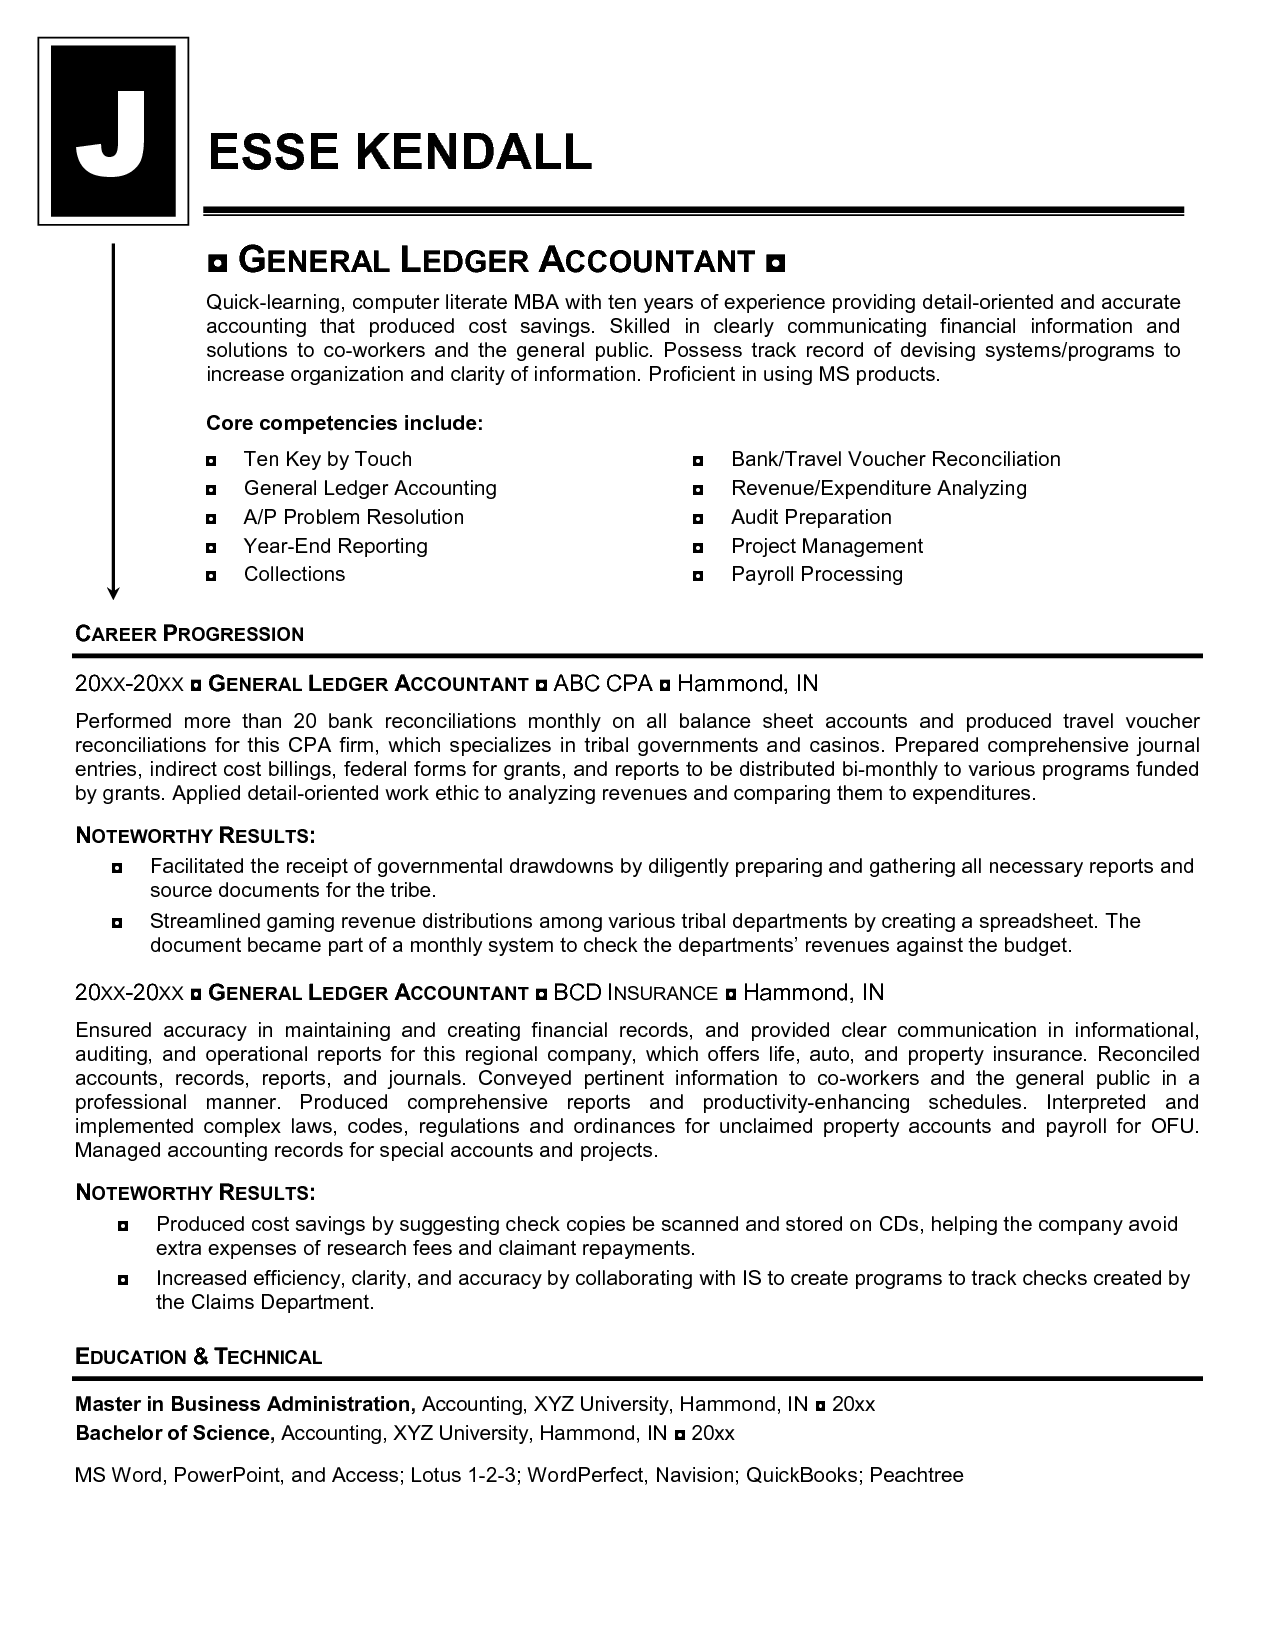 general ledger accountant resume mikes blog - Professional Accounting Resume